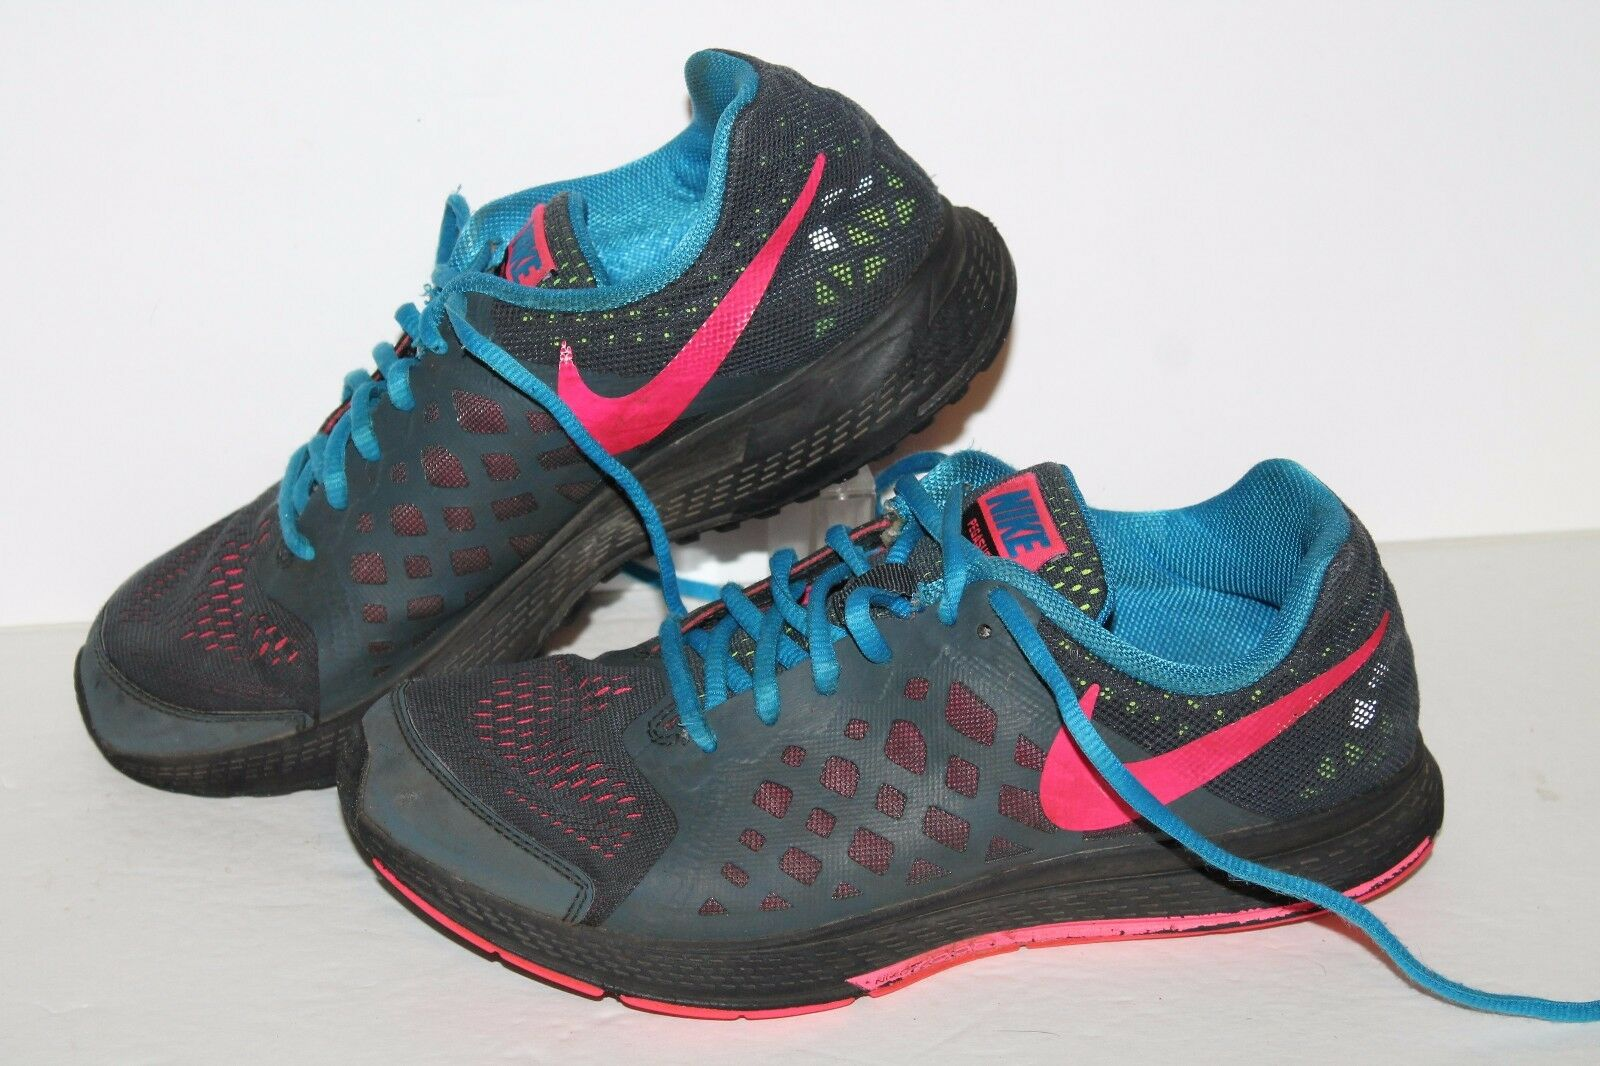 Nike Air Pegasus 31 Running Shoes, Grey/Pink/Blue, Womens US ~7 or 5.5 Youth Cheap and beautiful fashion